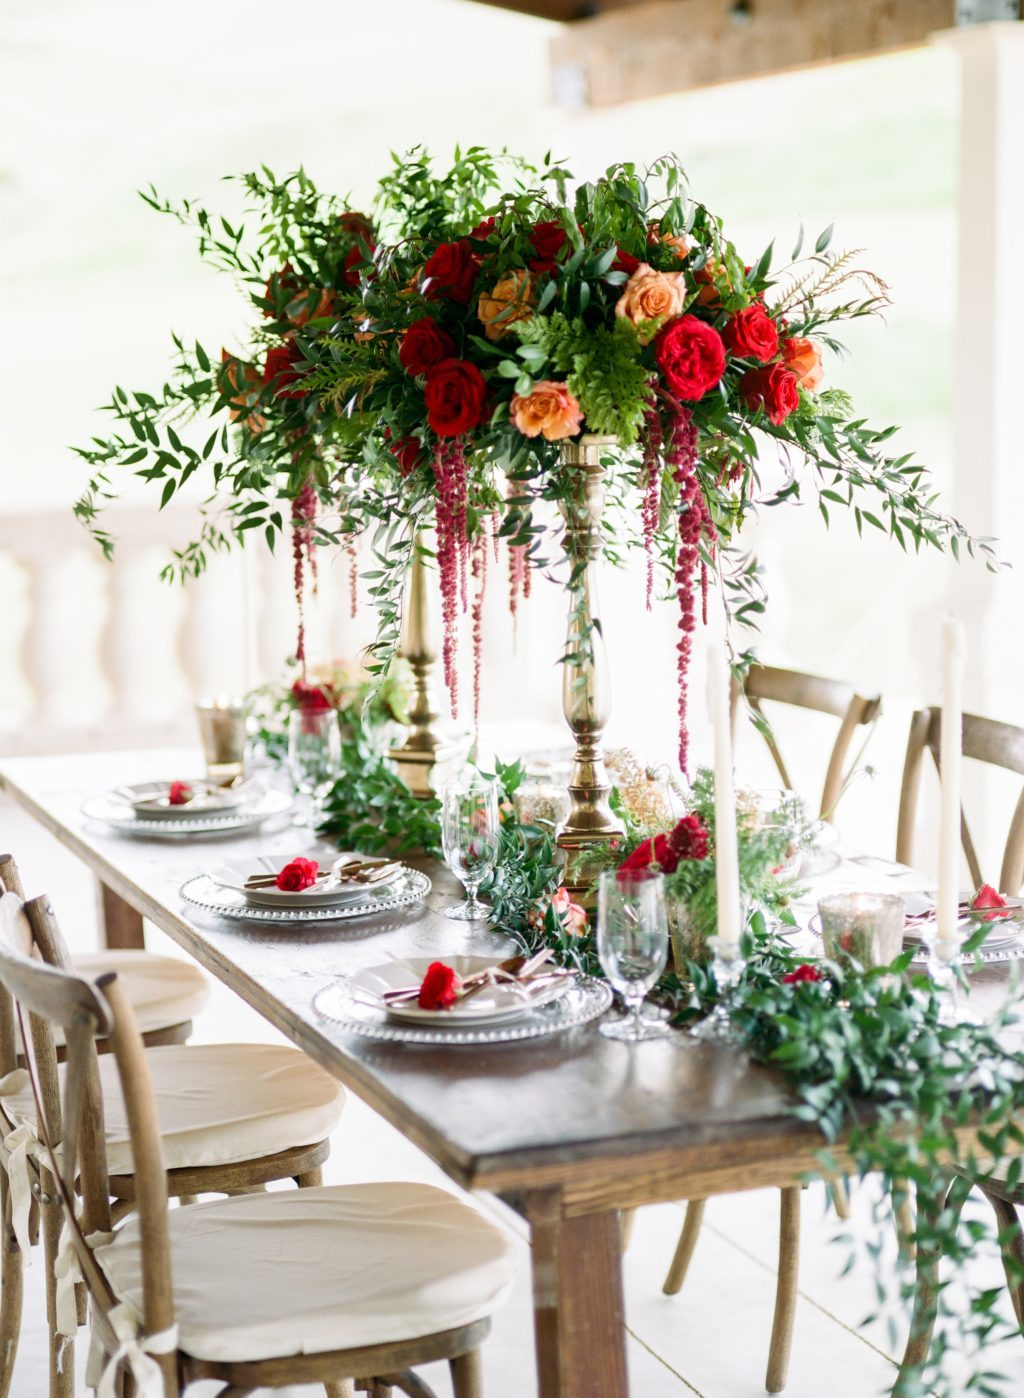 Rancho Ricardo Villa Gardens inspiration shoot